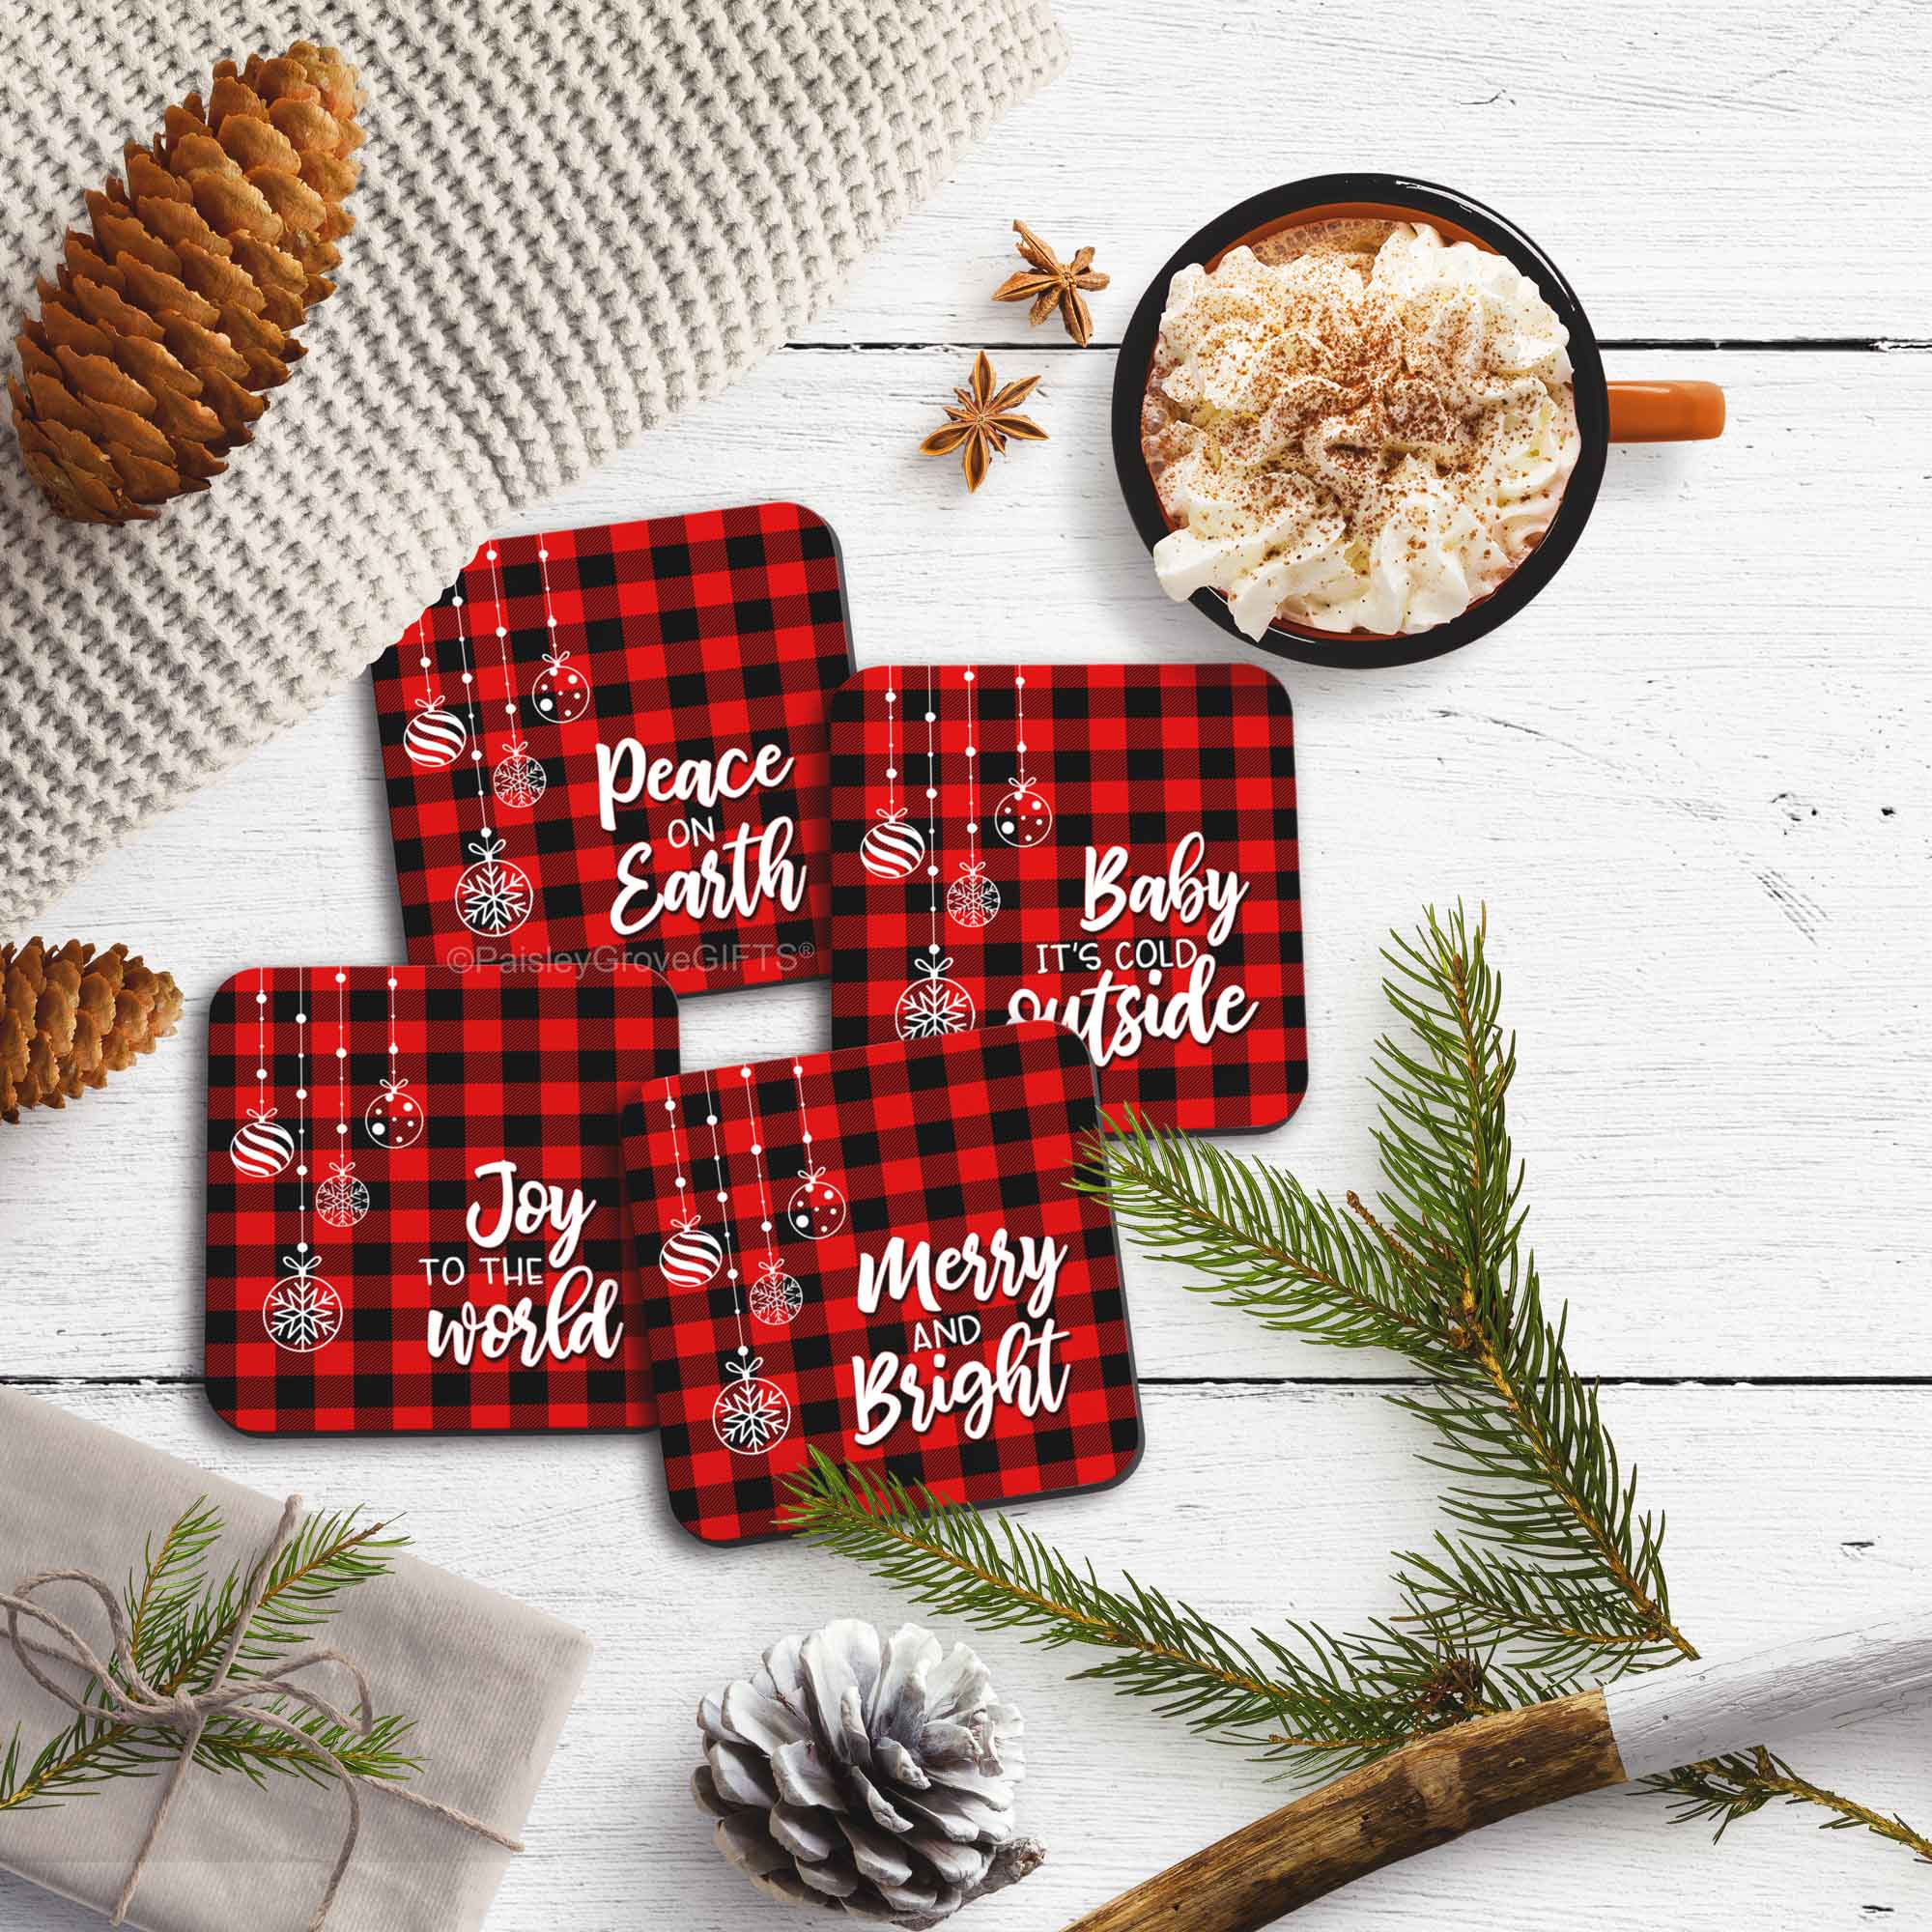 CopyrightPaisleyGroveGIFTS S704b Set of 4 Holiday Decor Coasters with Cork Backing Table Protection Buffalo Plaid Checkers